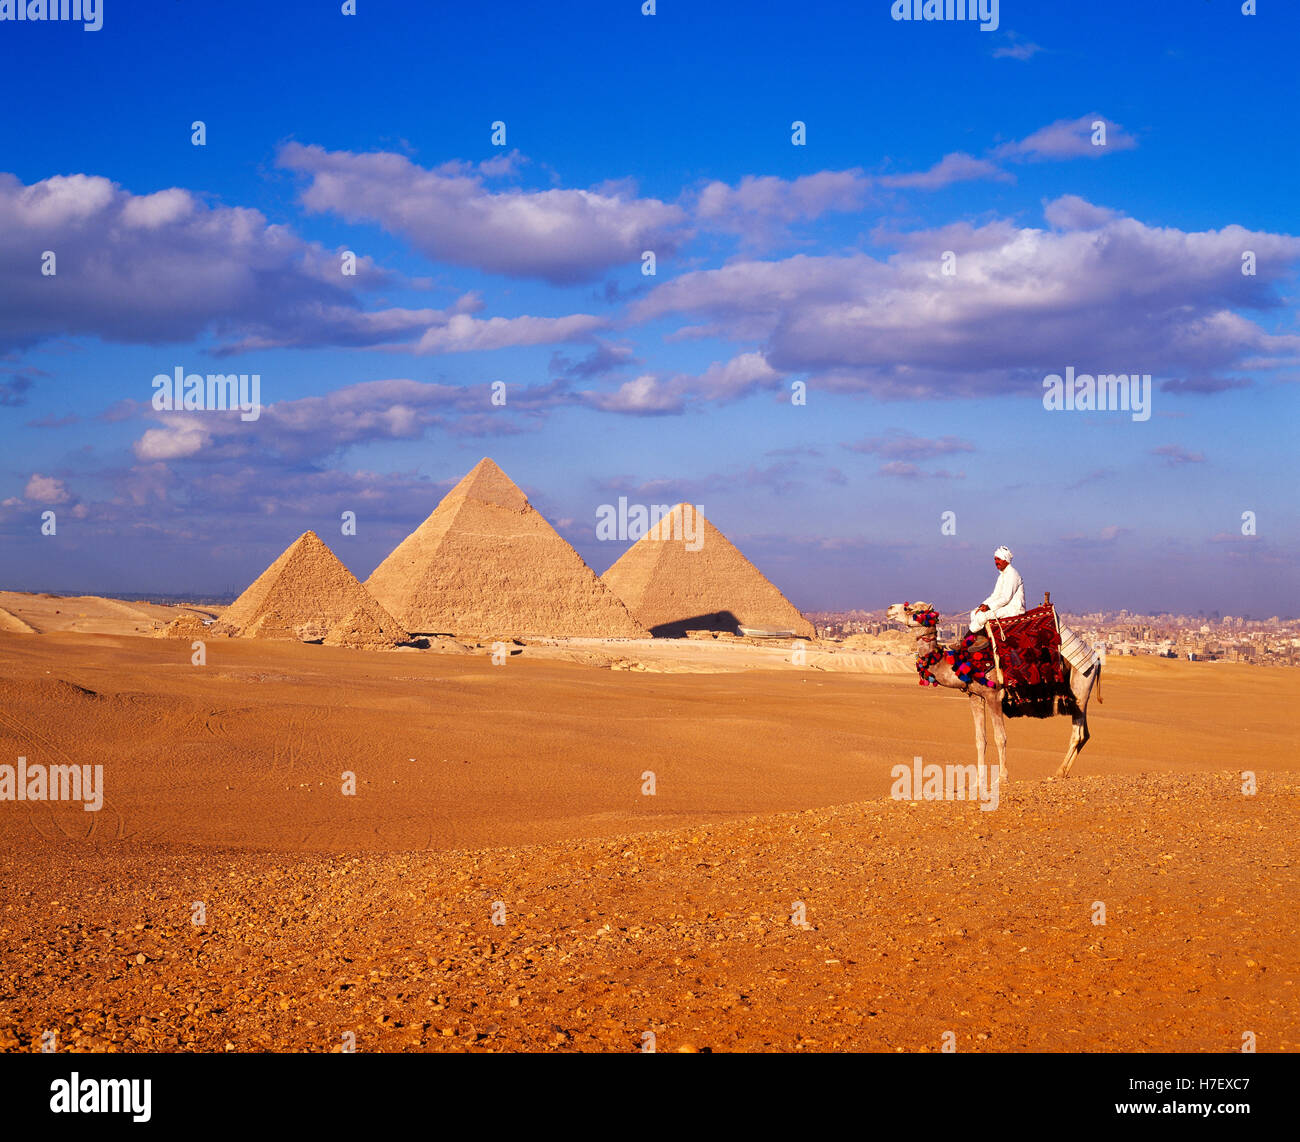 Pyramids and Camel, Giza, Egypt - Stock Image